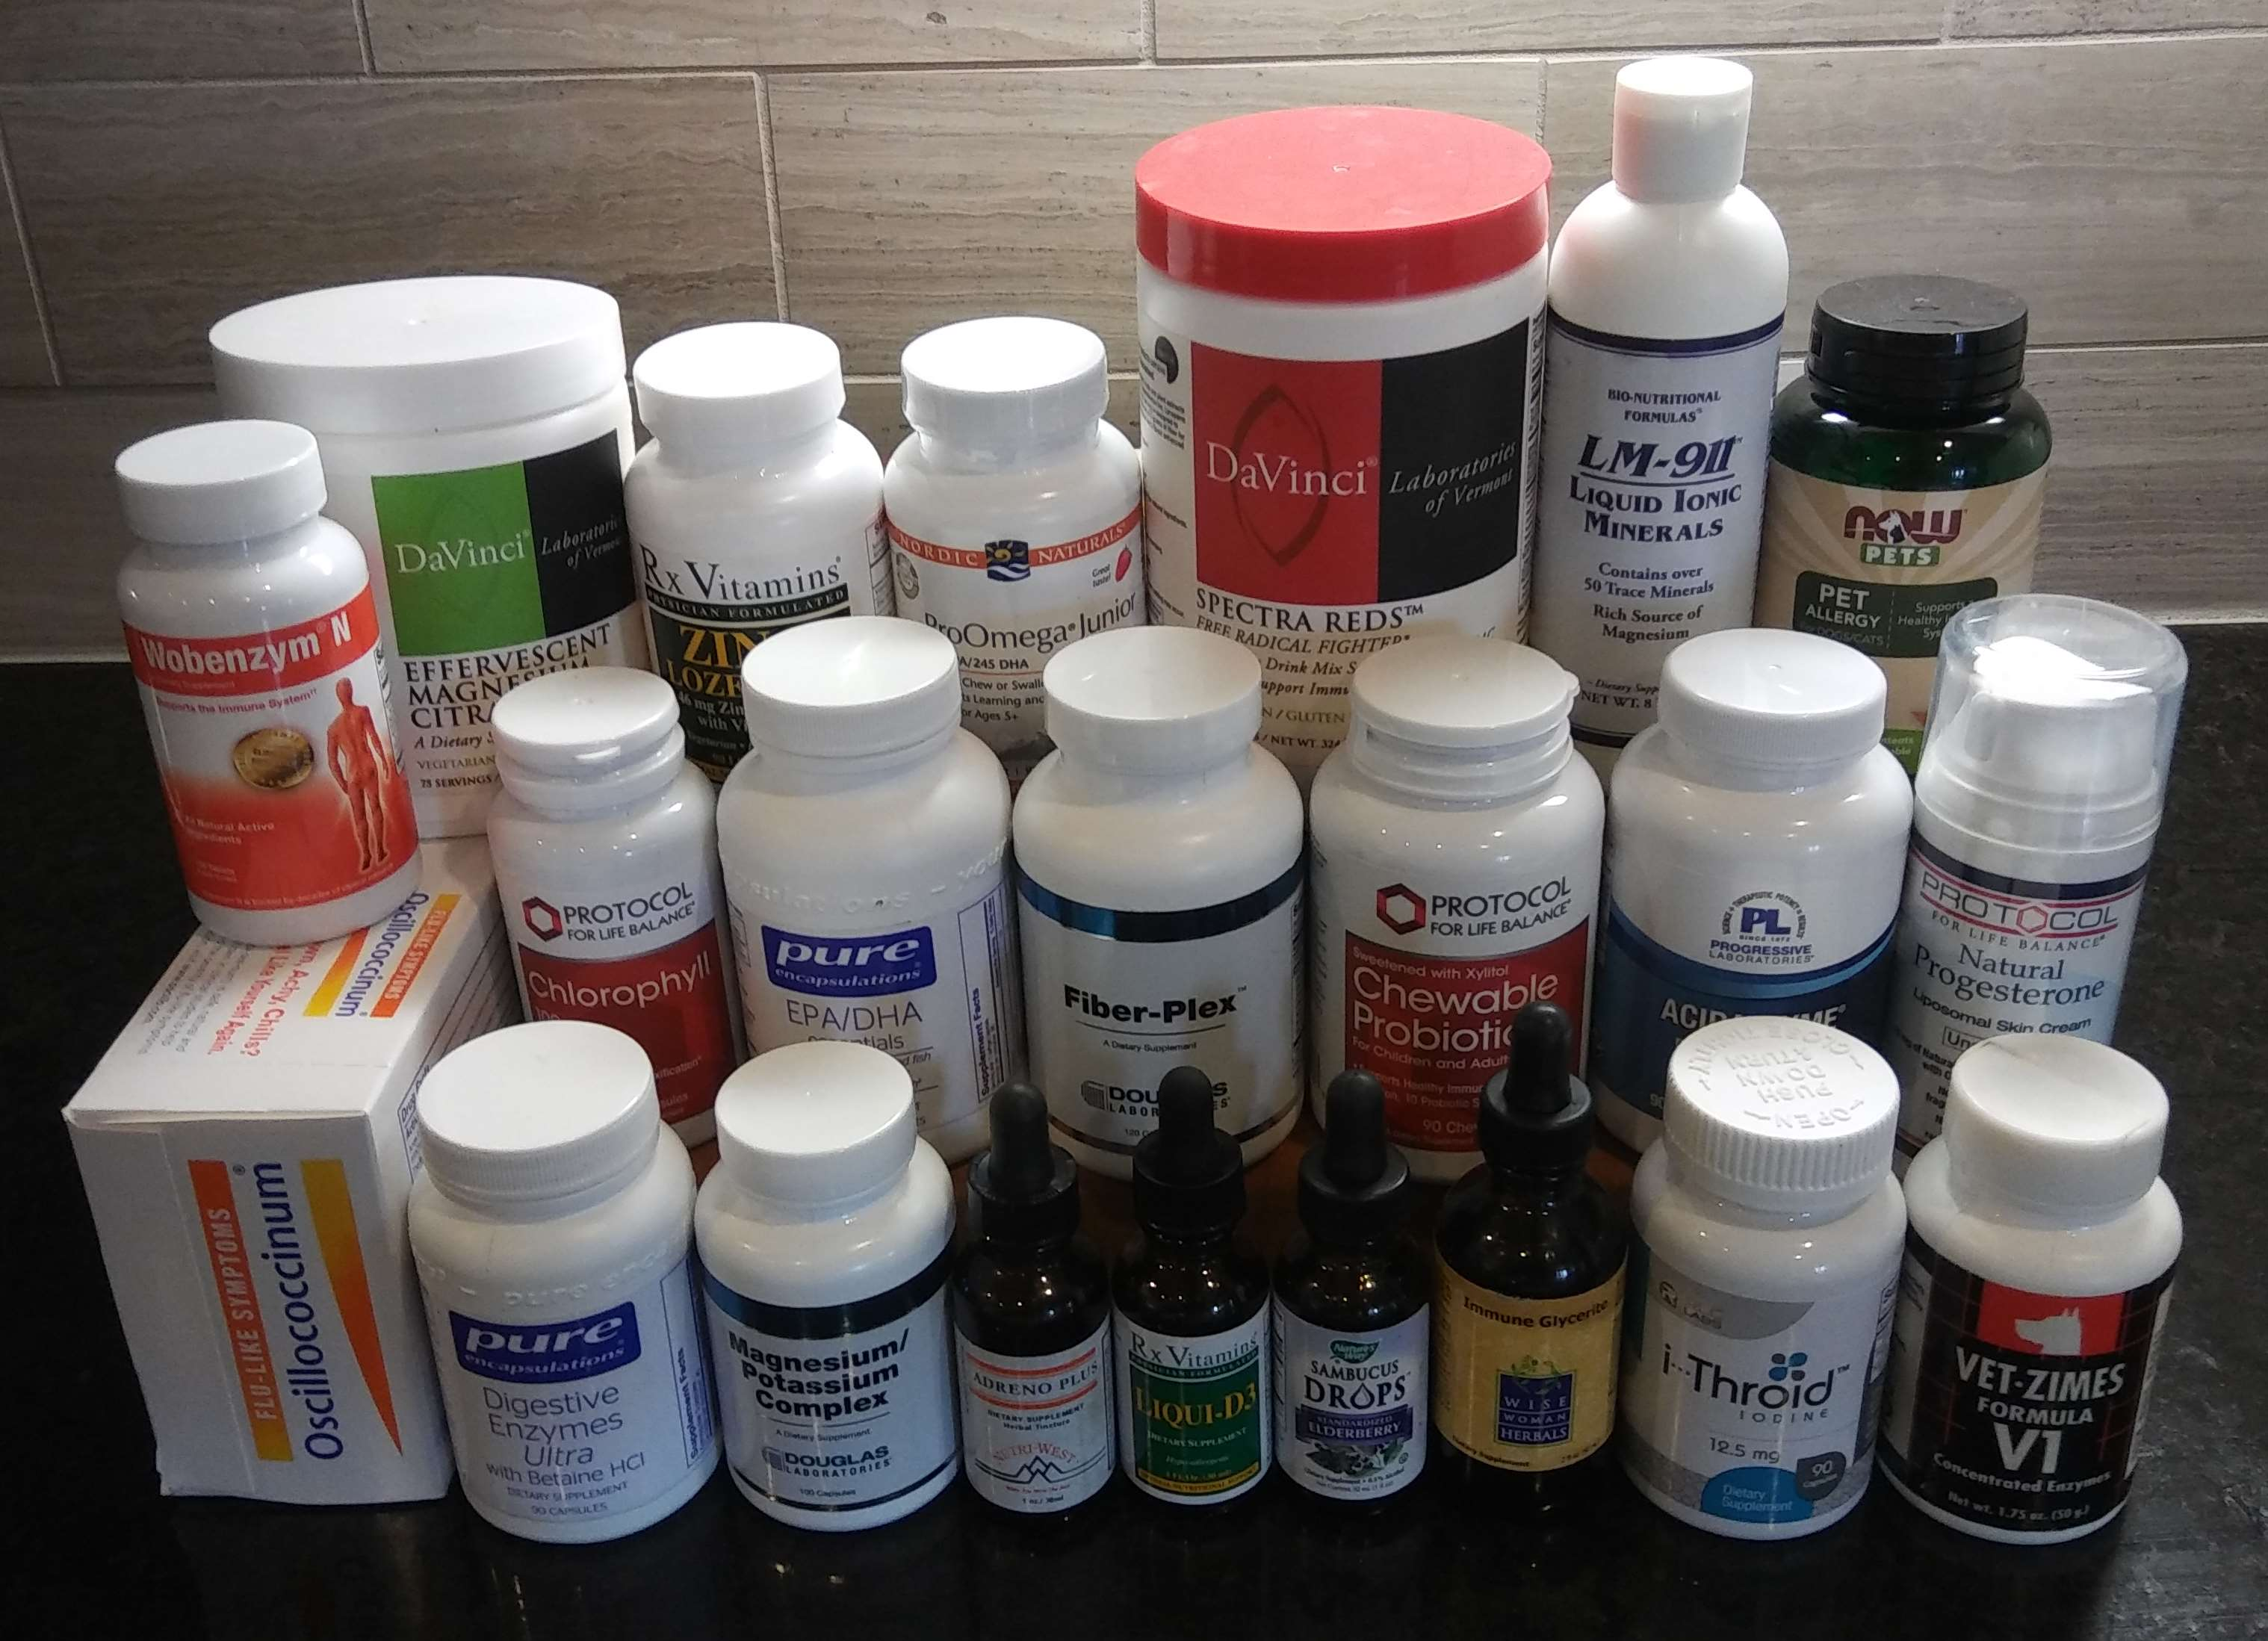 NUTRITIONAL PRODUCTS & SUPPLEMENTS   EUROPAMARK